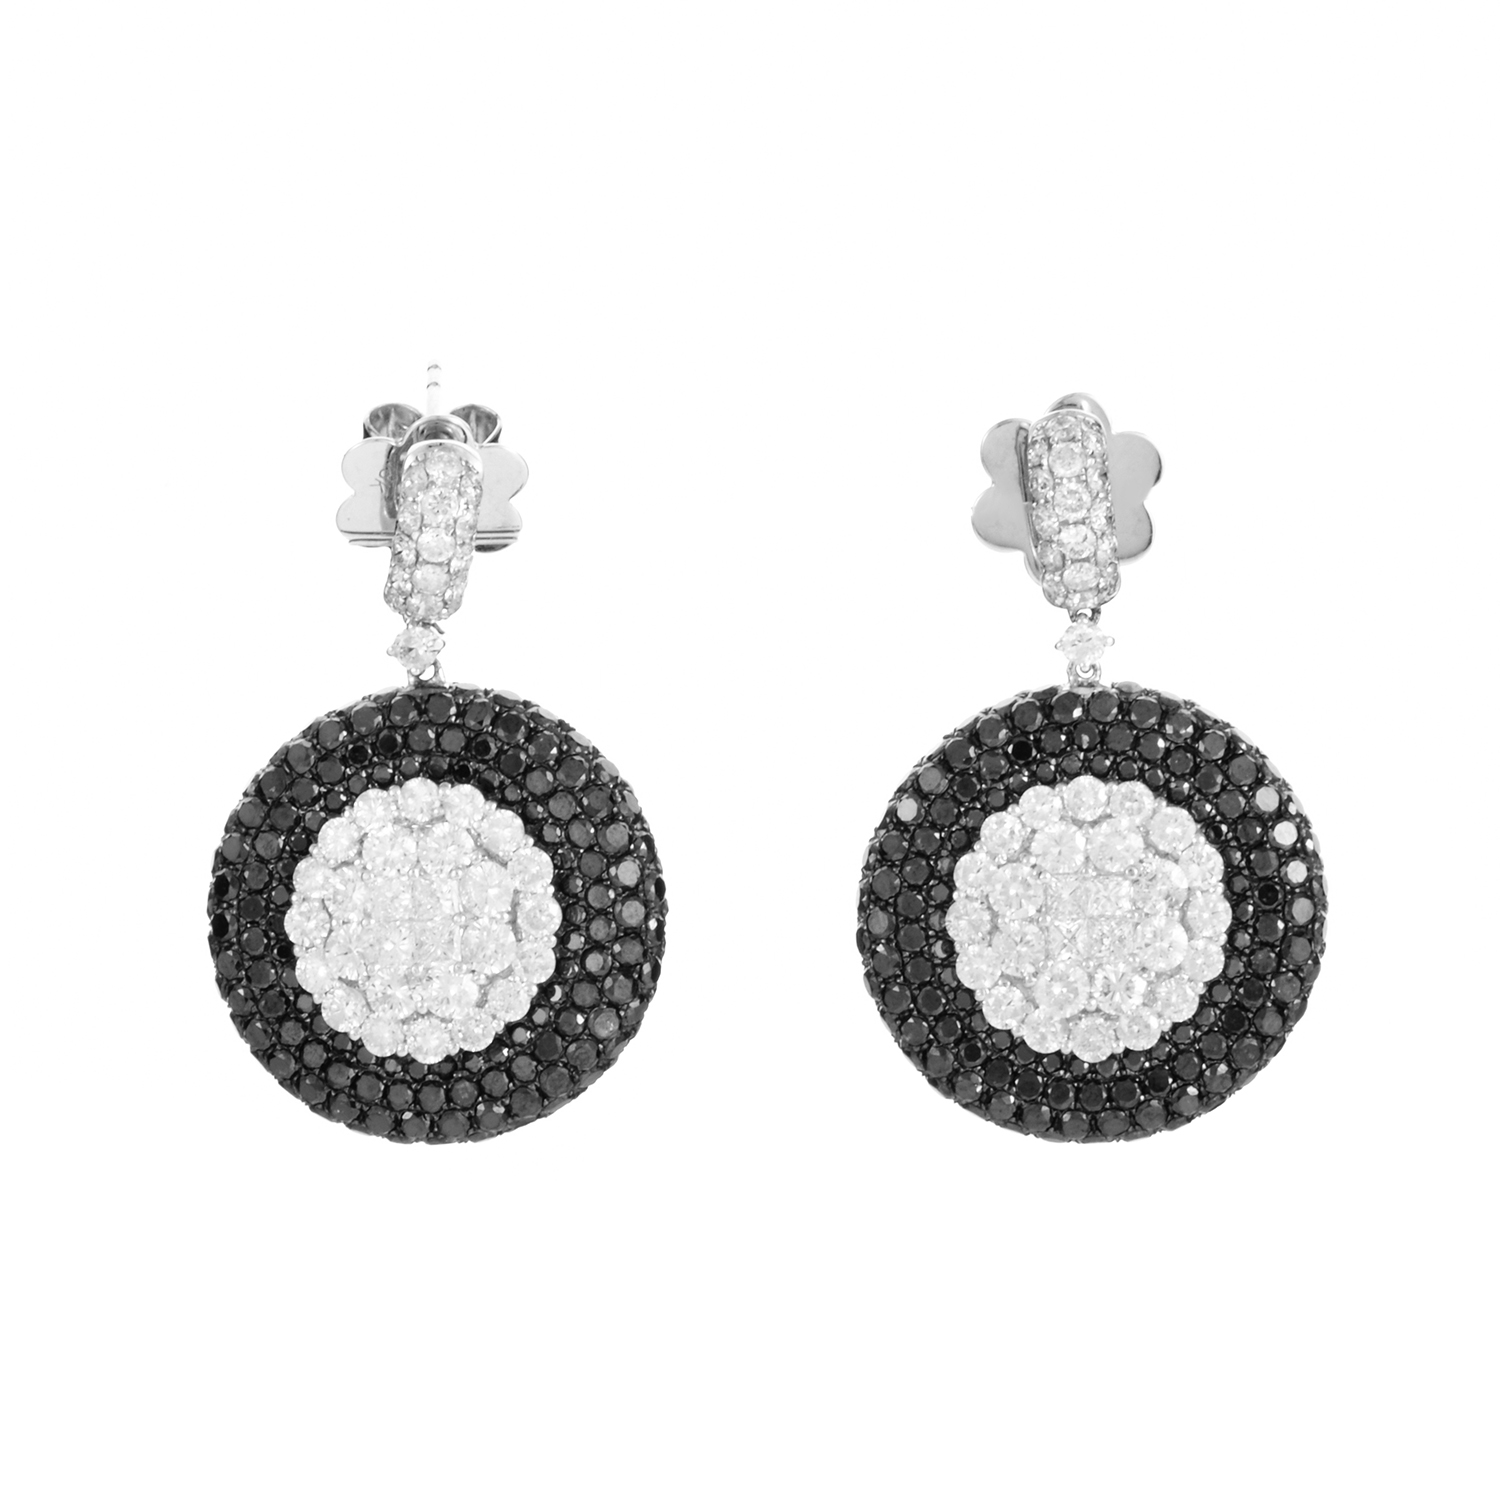 18K White Gold & Diamond Earrings PM-41